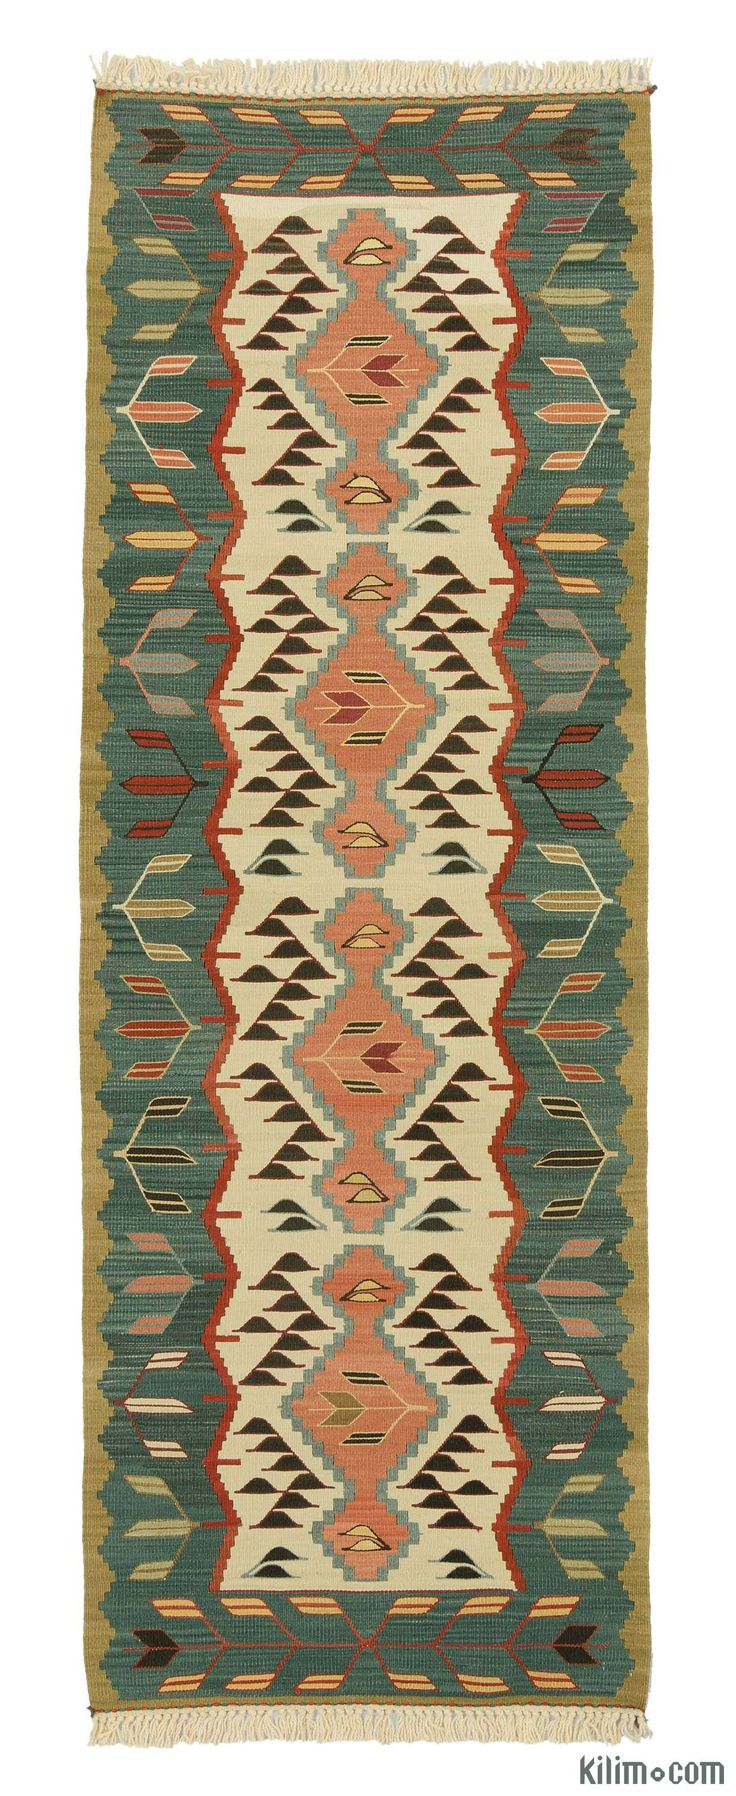 New Turkish kilim runner rug hand-woven with vegetable-dyed and hand-spun wool. The fringes can be removed upon request. If you like the design of this rug, we can custom make it to meet your color and size requirements.